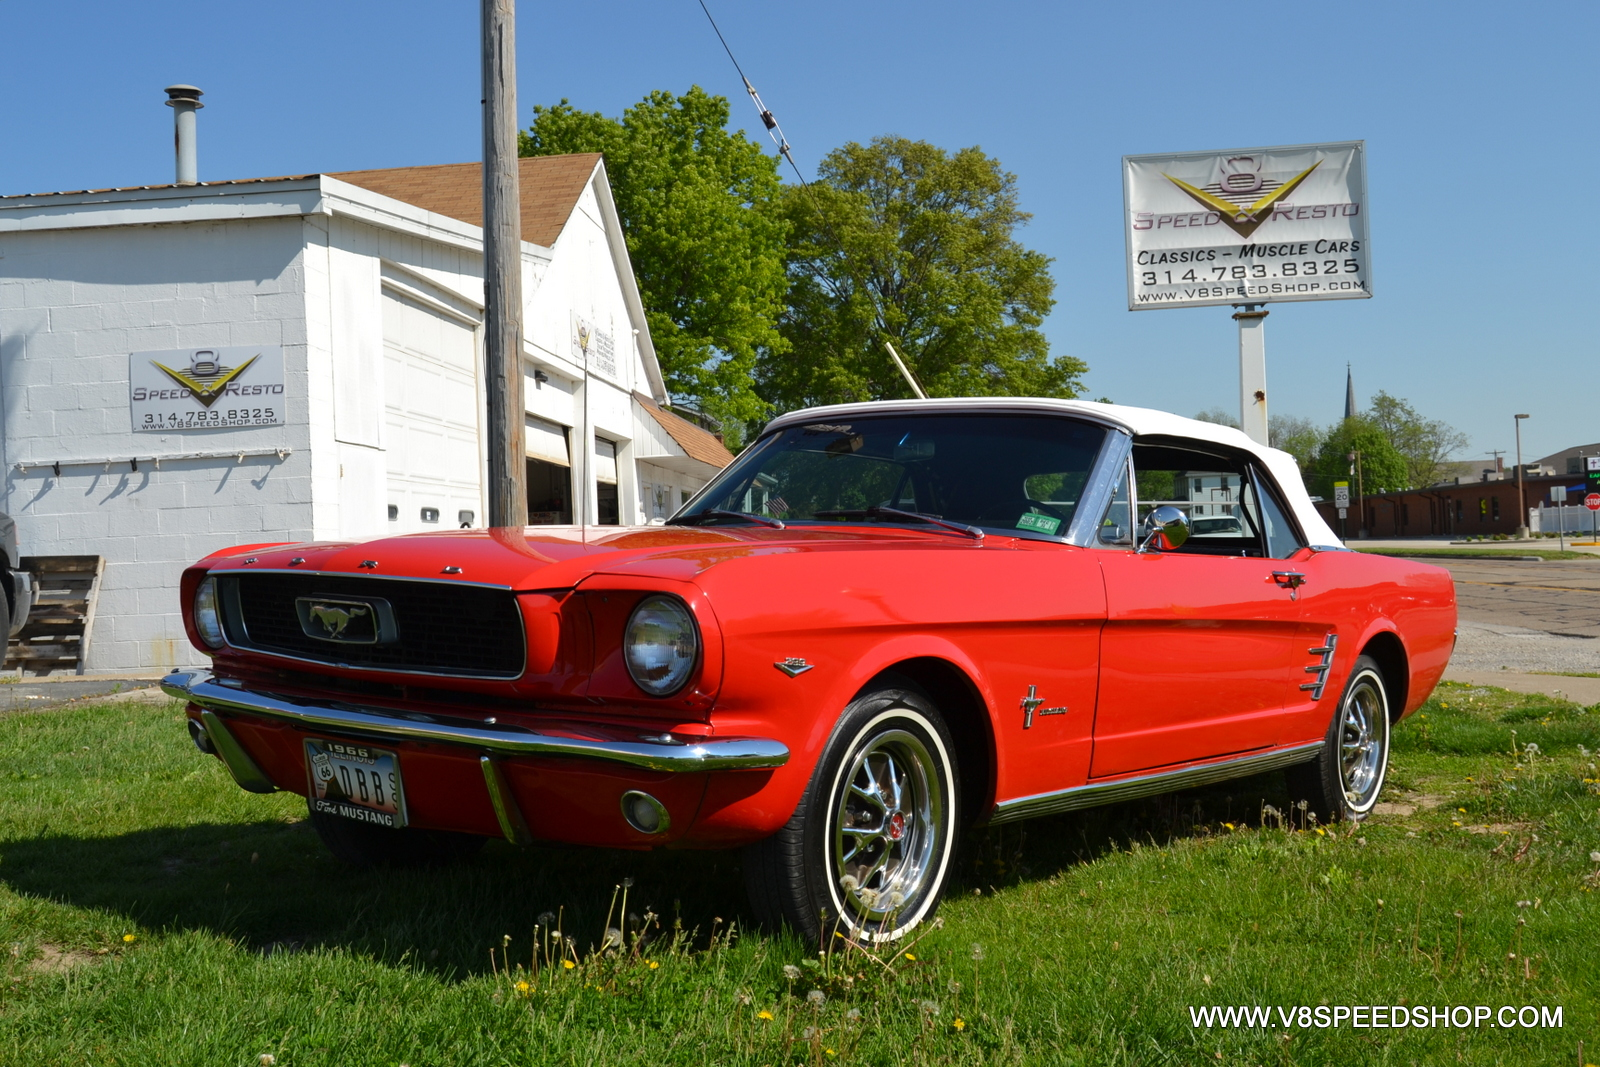 1966 Ford Mustang Brakes, Tuneup, Interior, and Convertible Top Restoration at the V8 Speed and Resto Shop